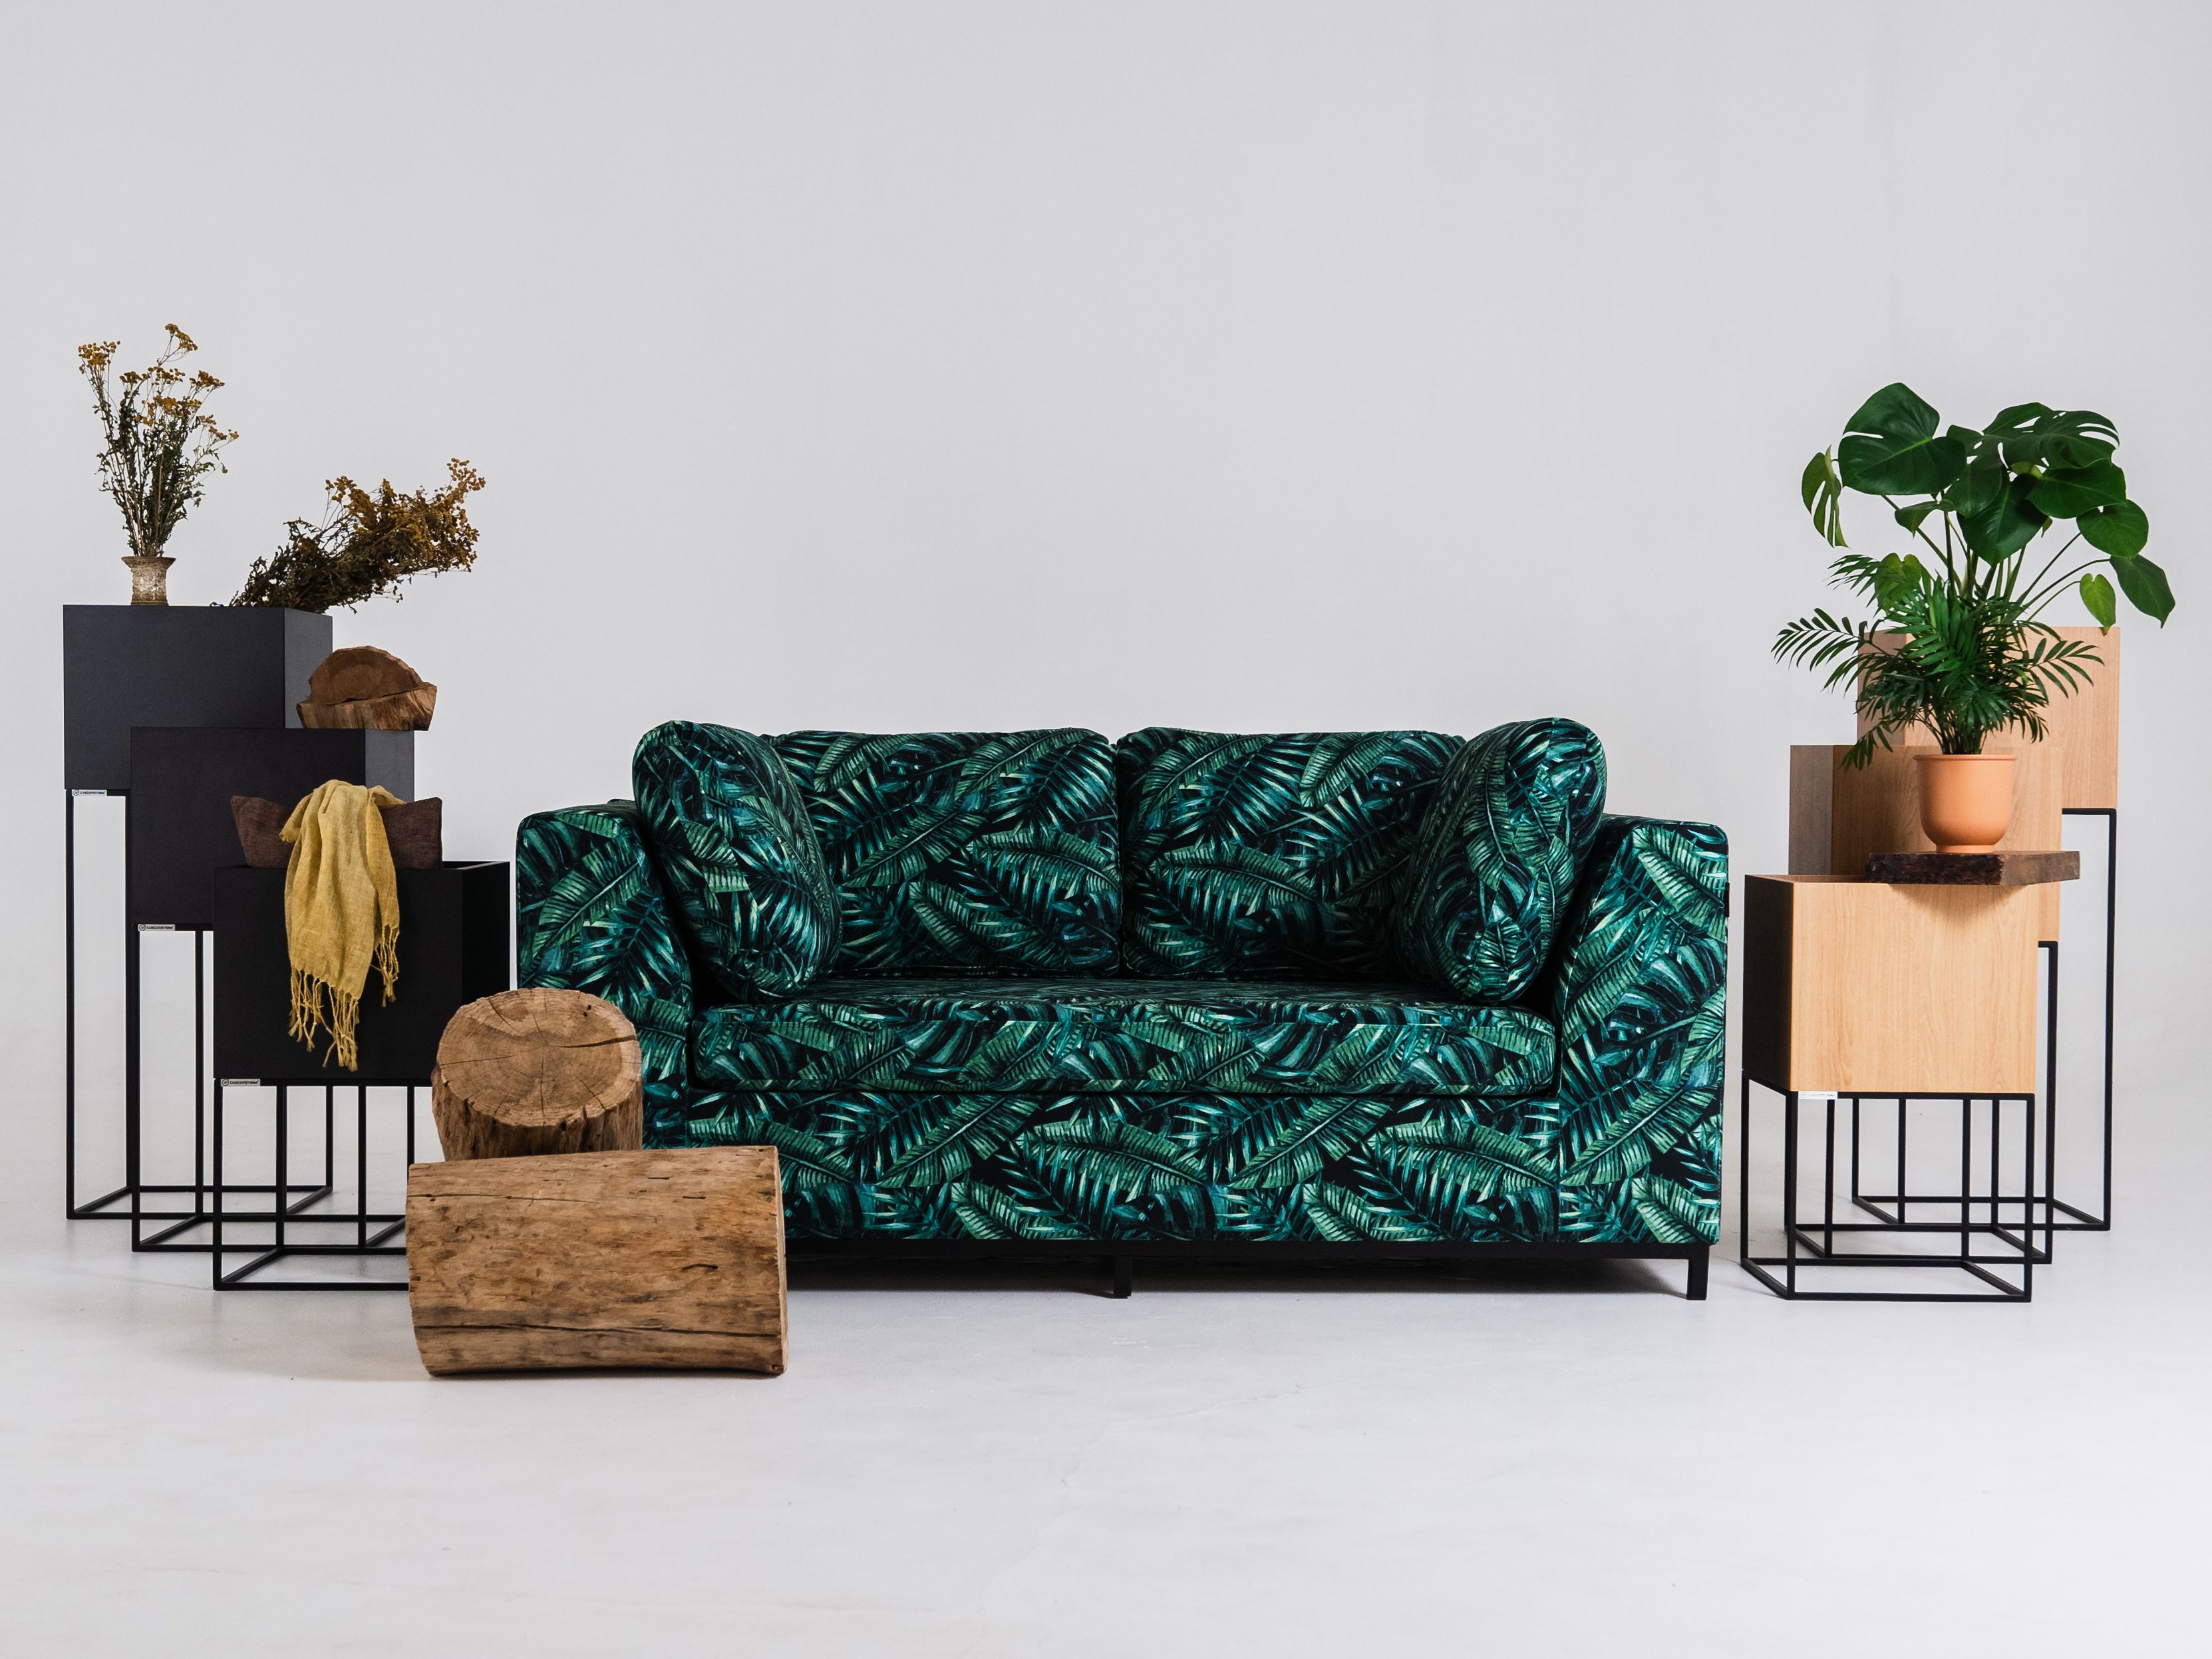 Sofa Ambient i Donice Palmus